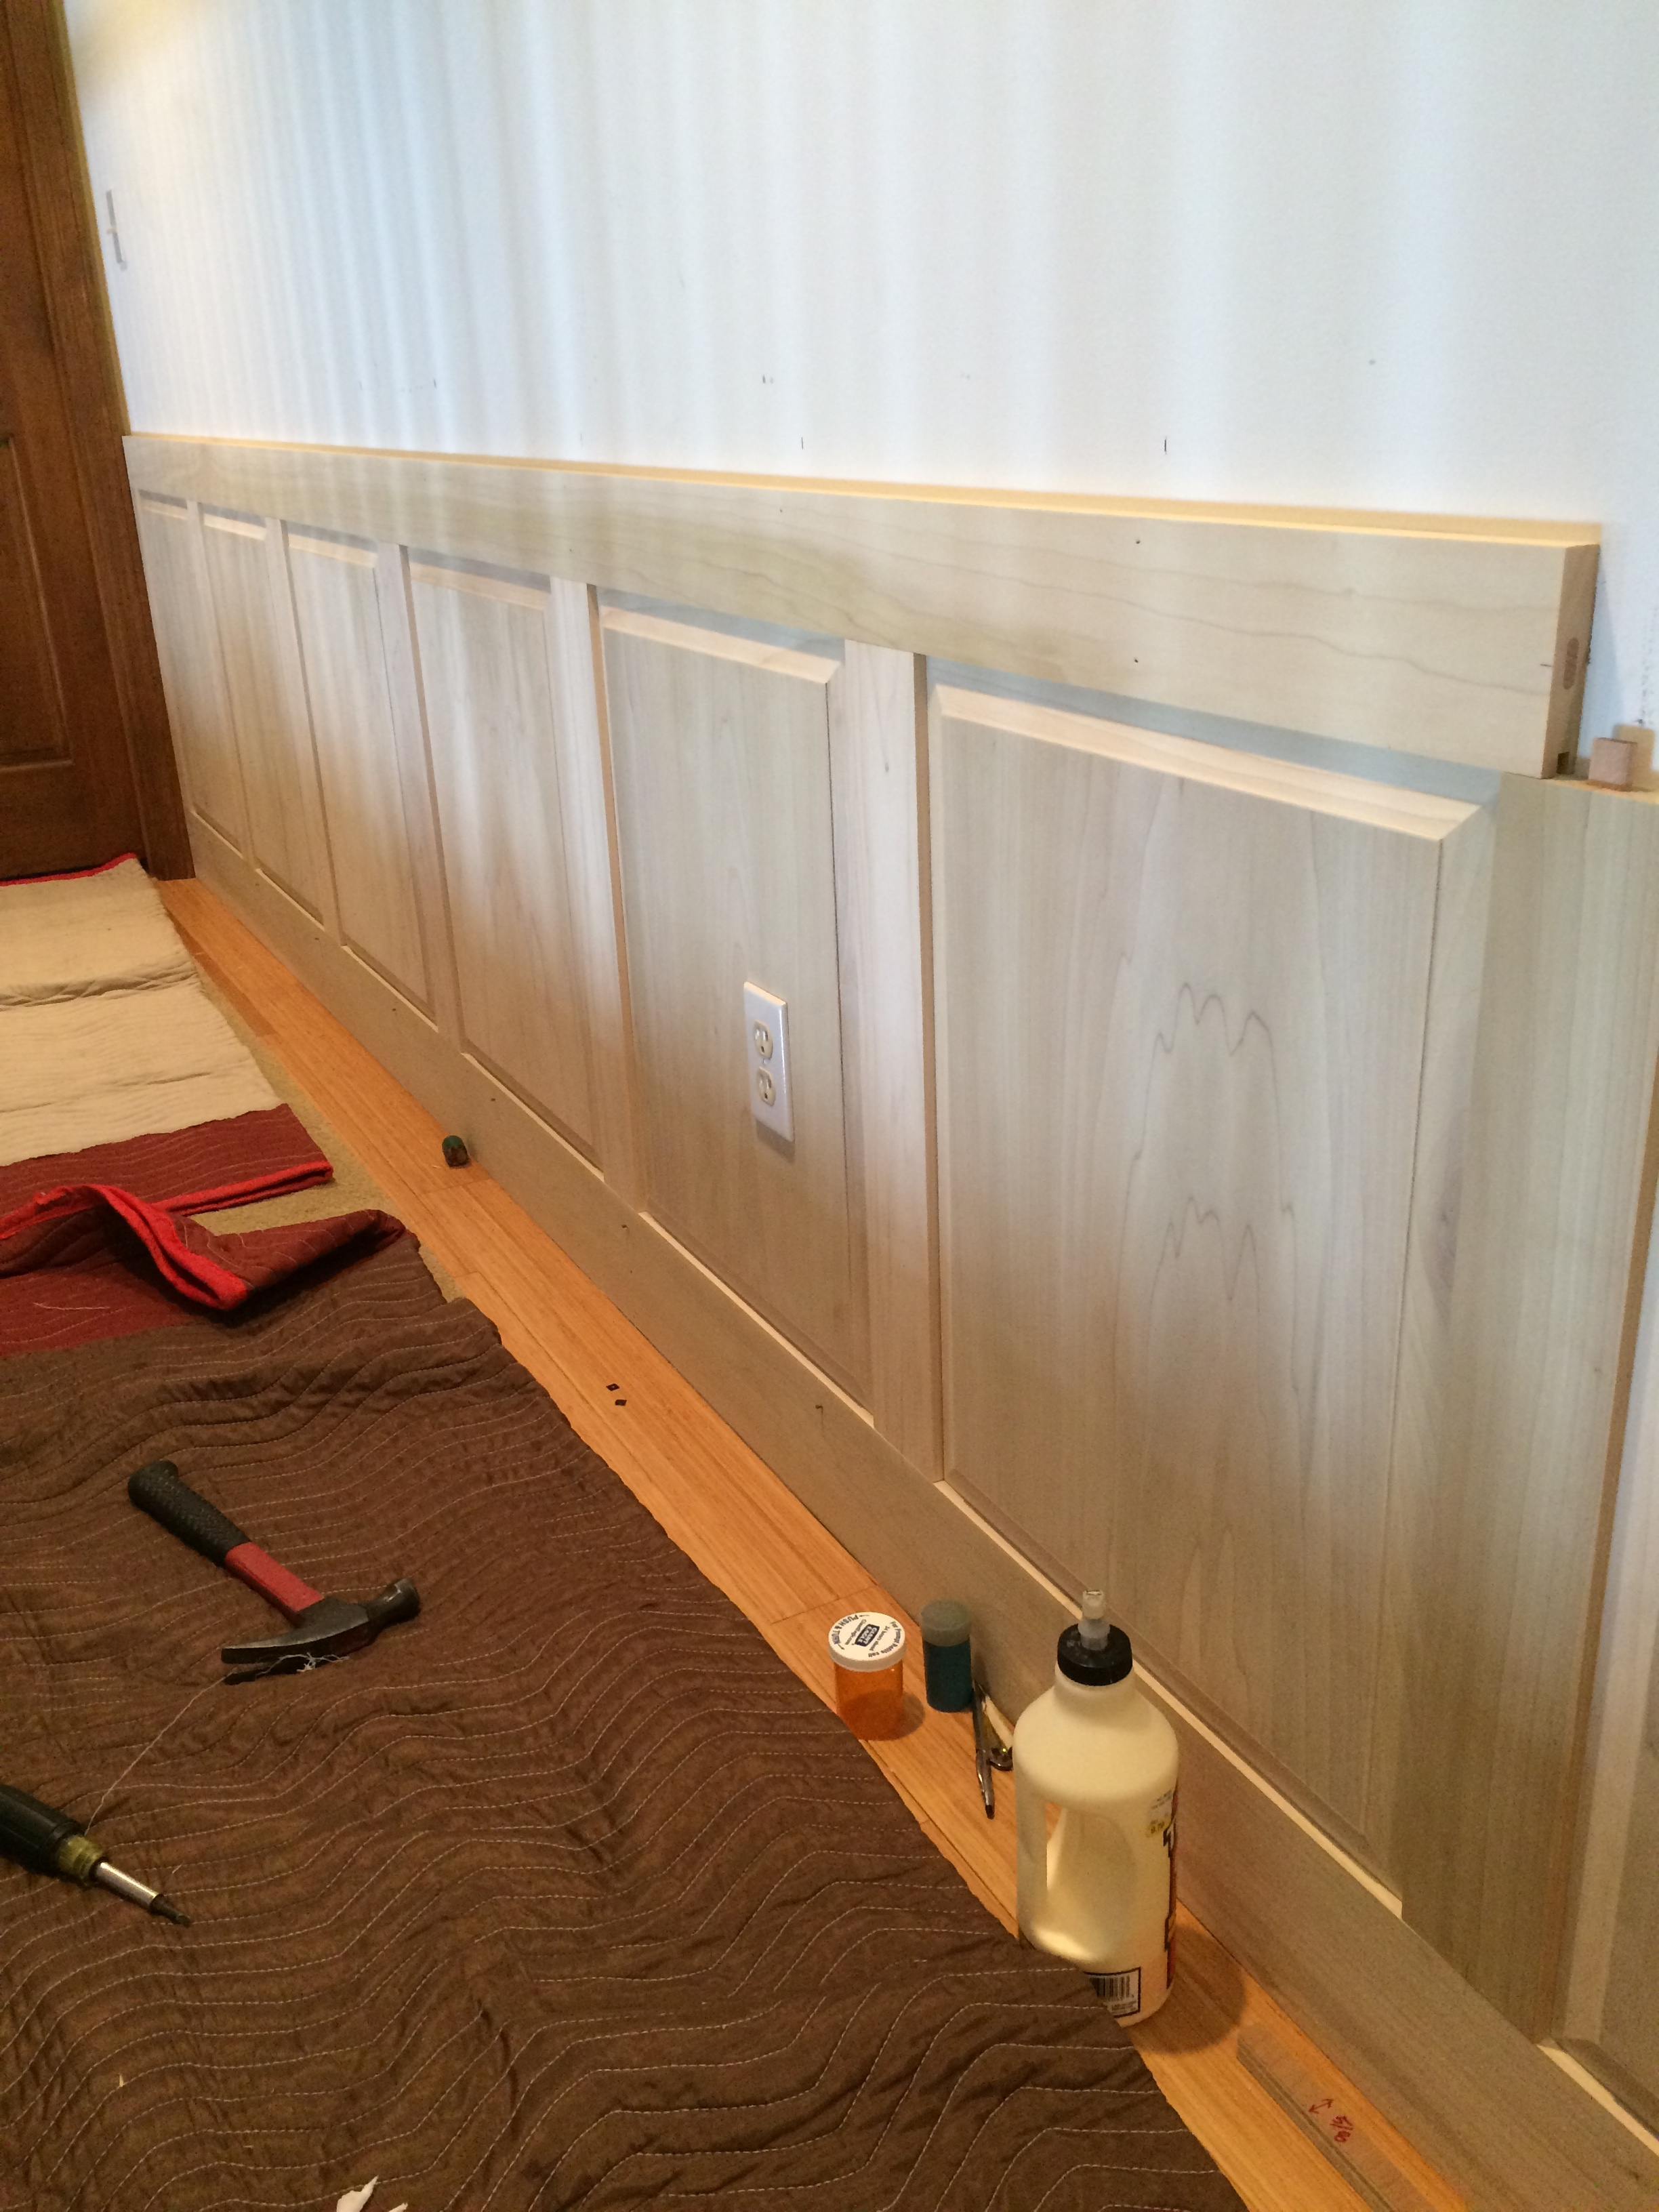 Panels are sized to the wall to ensure electrical boxes are in the flat of the panel.